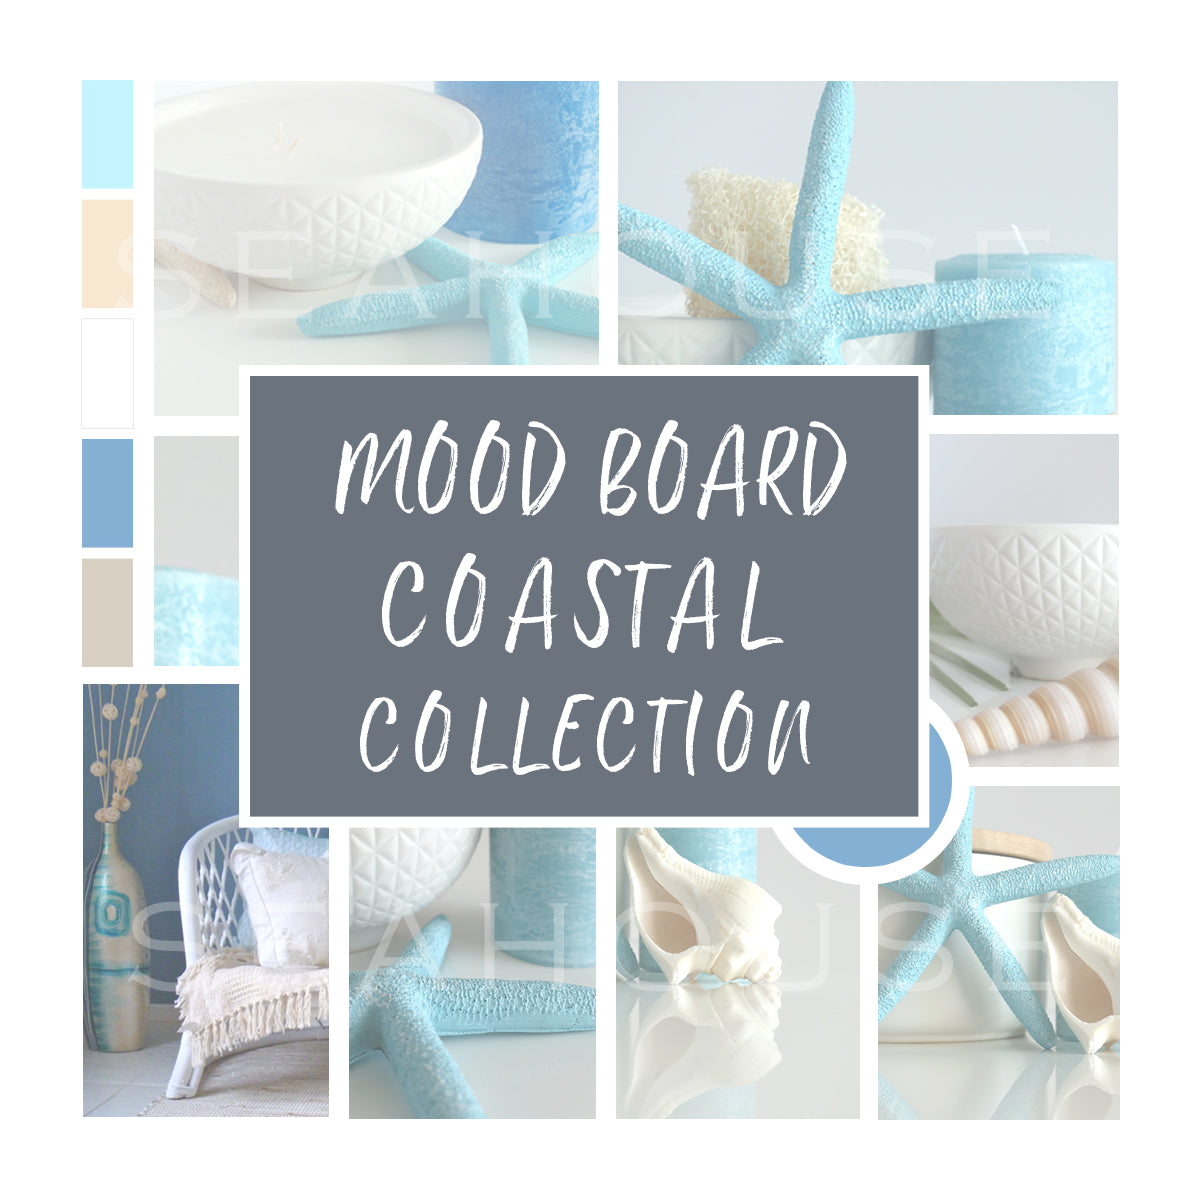 WM Mood Board Coastal Collection for Blog